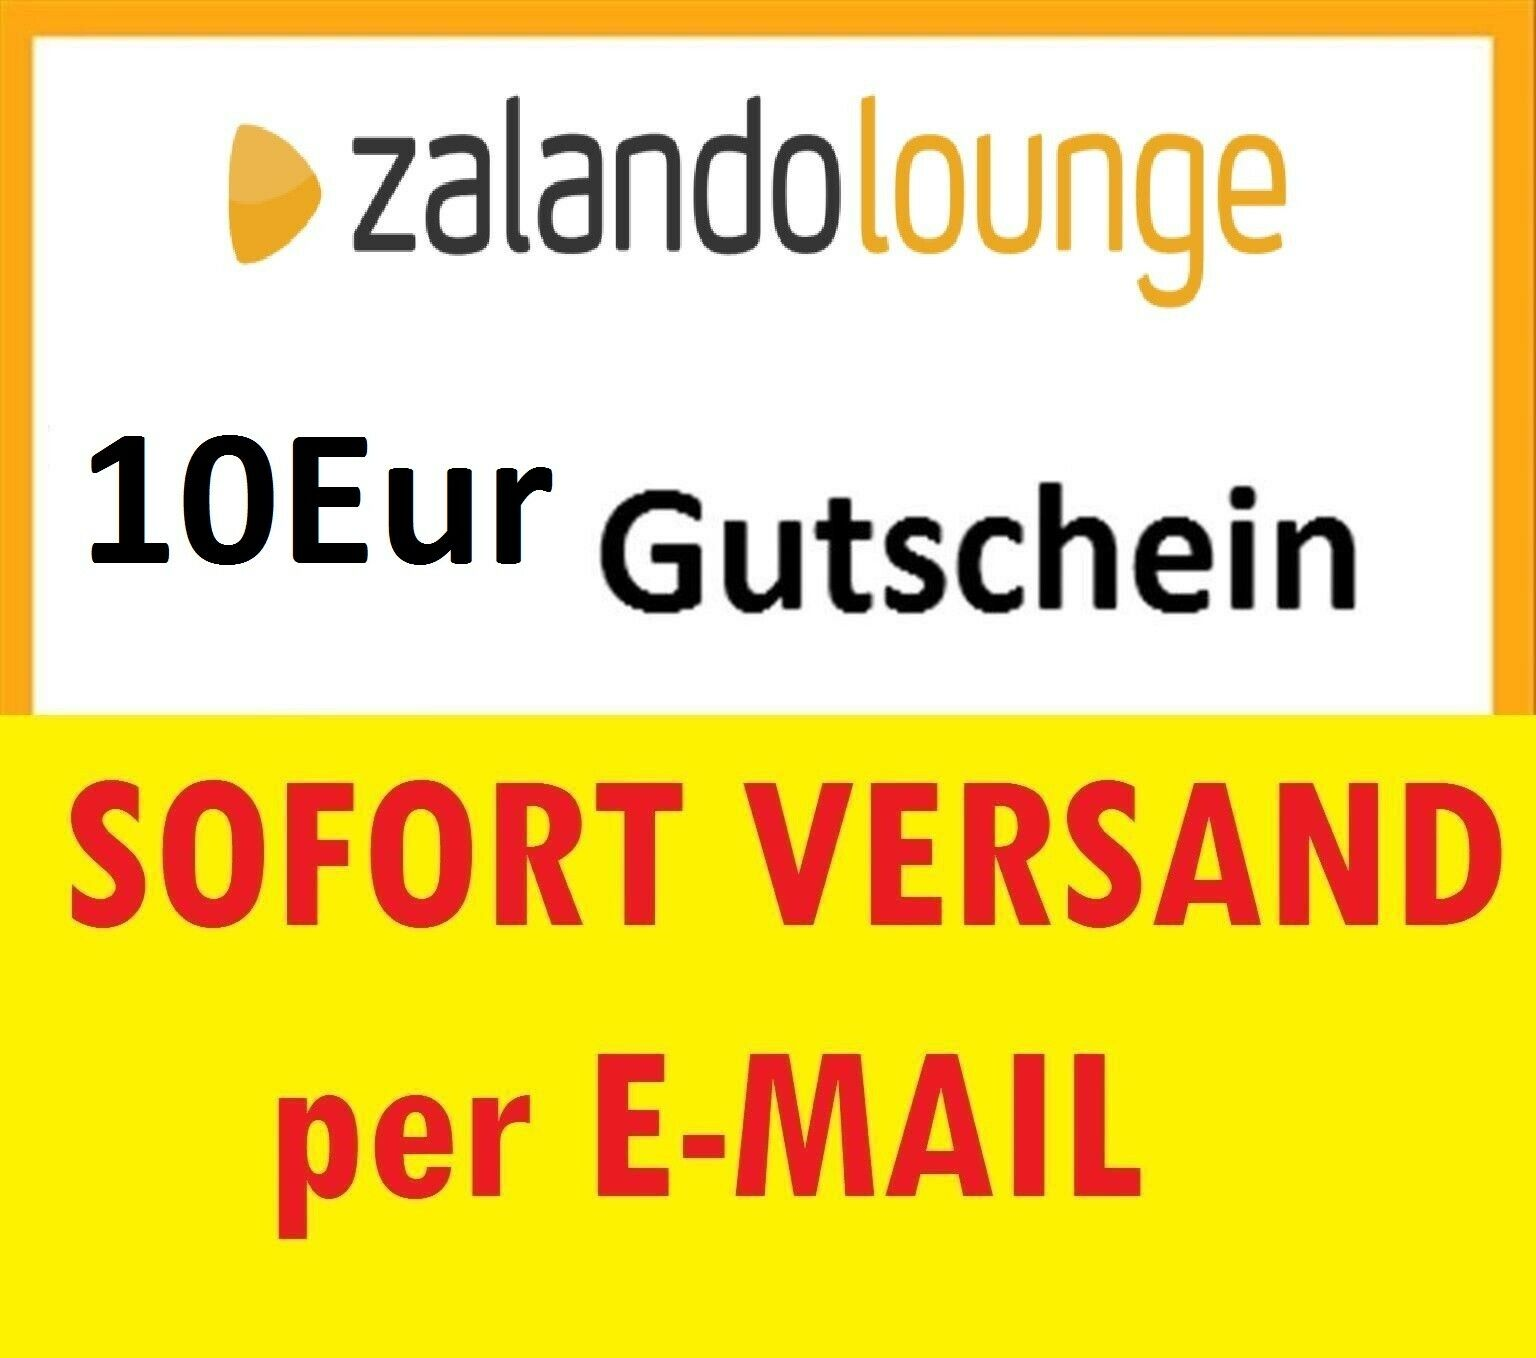 zalando gutschein kostenloser versand 10 rabatt coupon gutschrift voucher eur 1 00. Black Bedroom Furniture Sets. Home Design Ideas